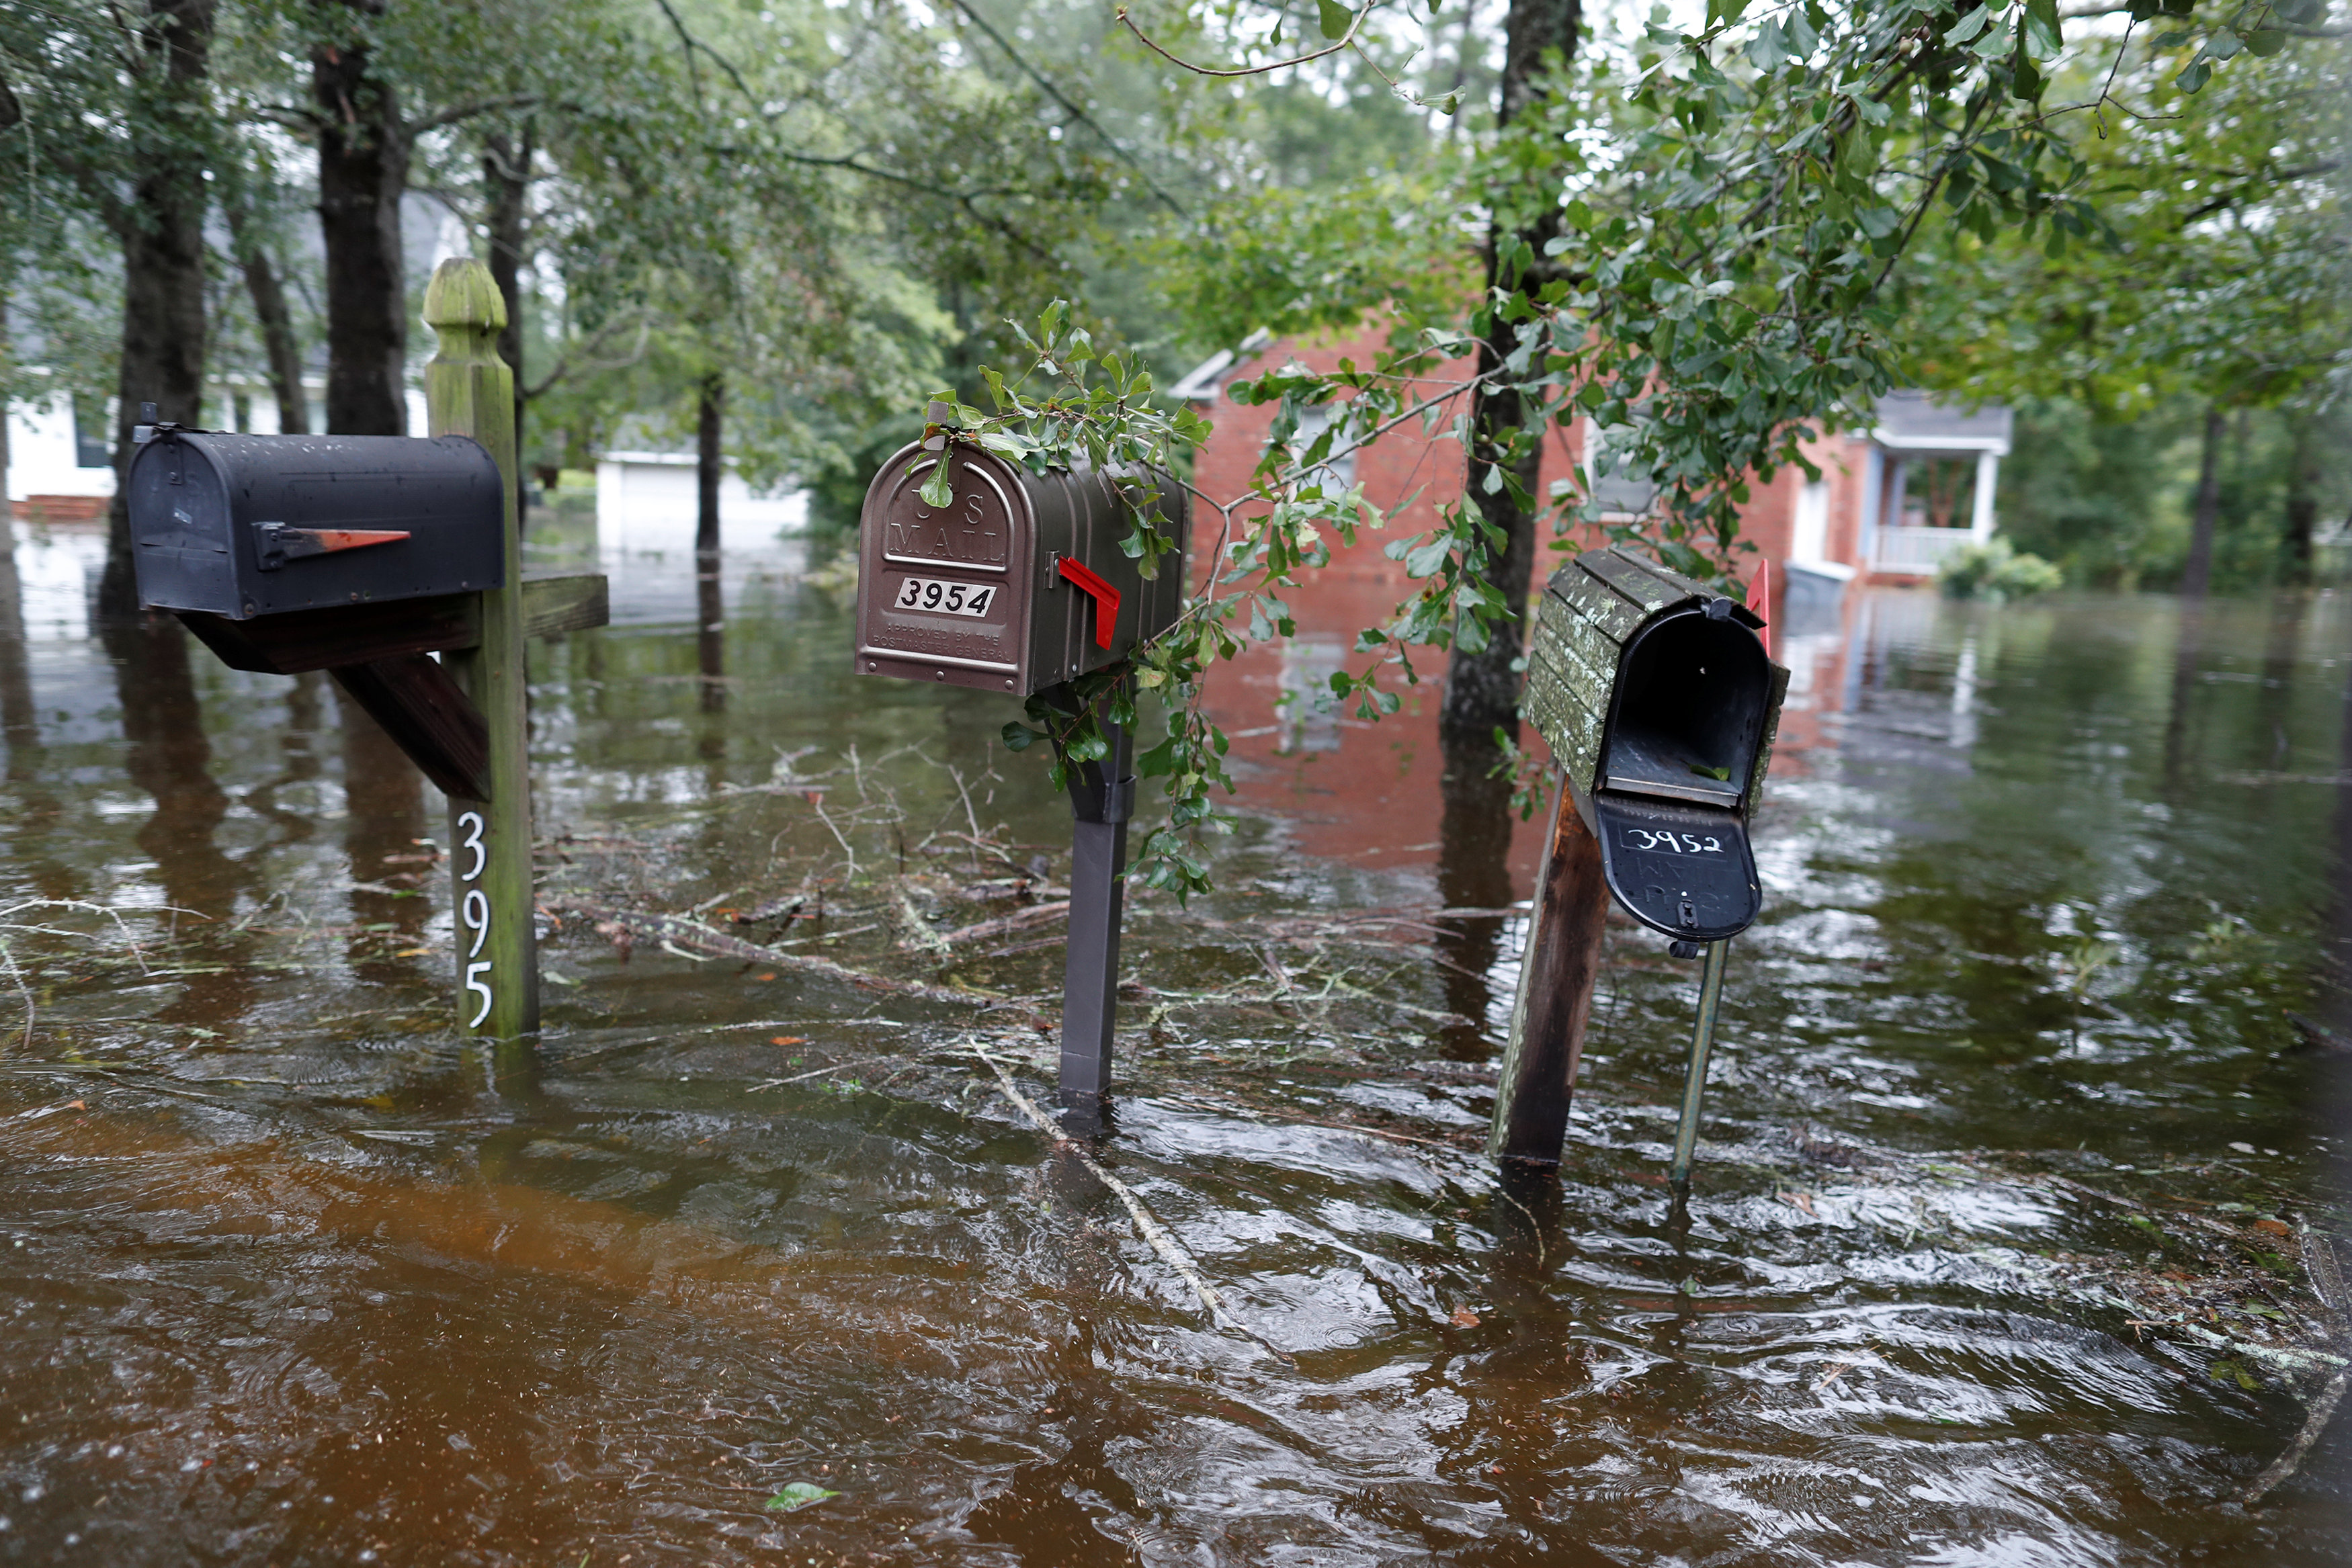 Floodwater rises on mailboxes in the Mayfair community during Tropical Storm Florence in Lumberton